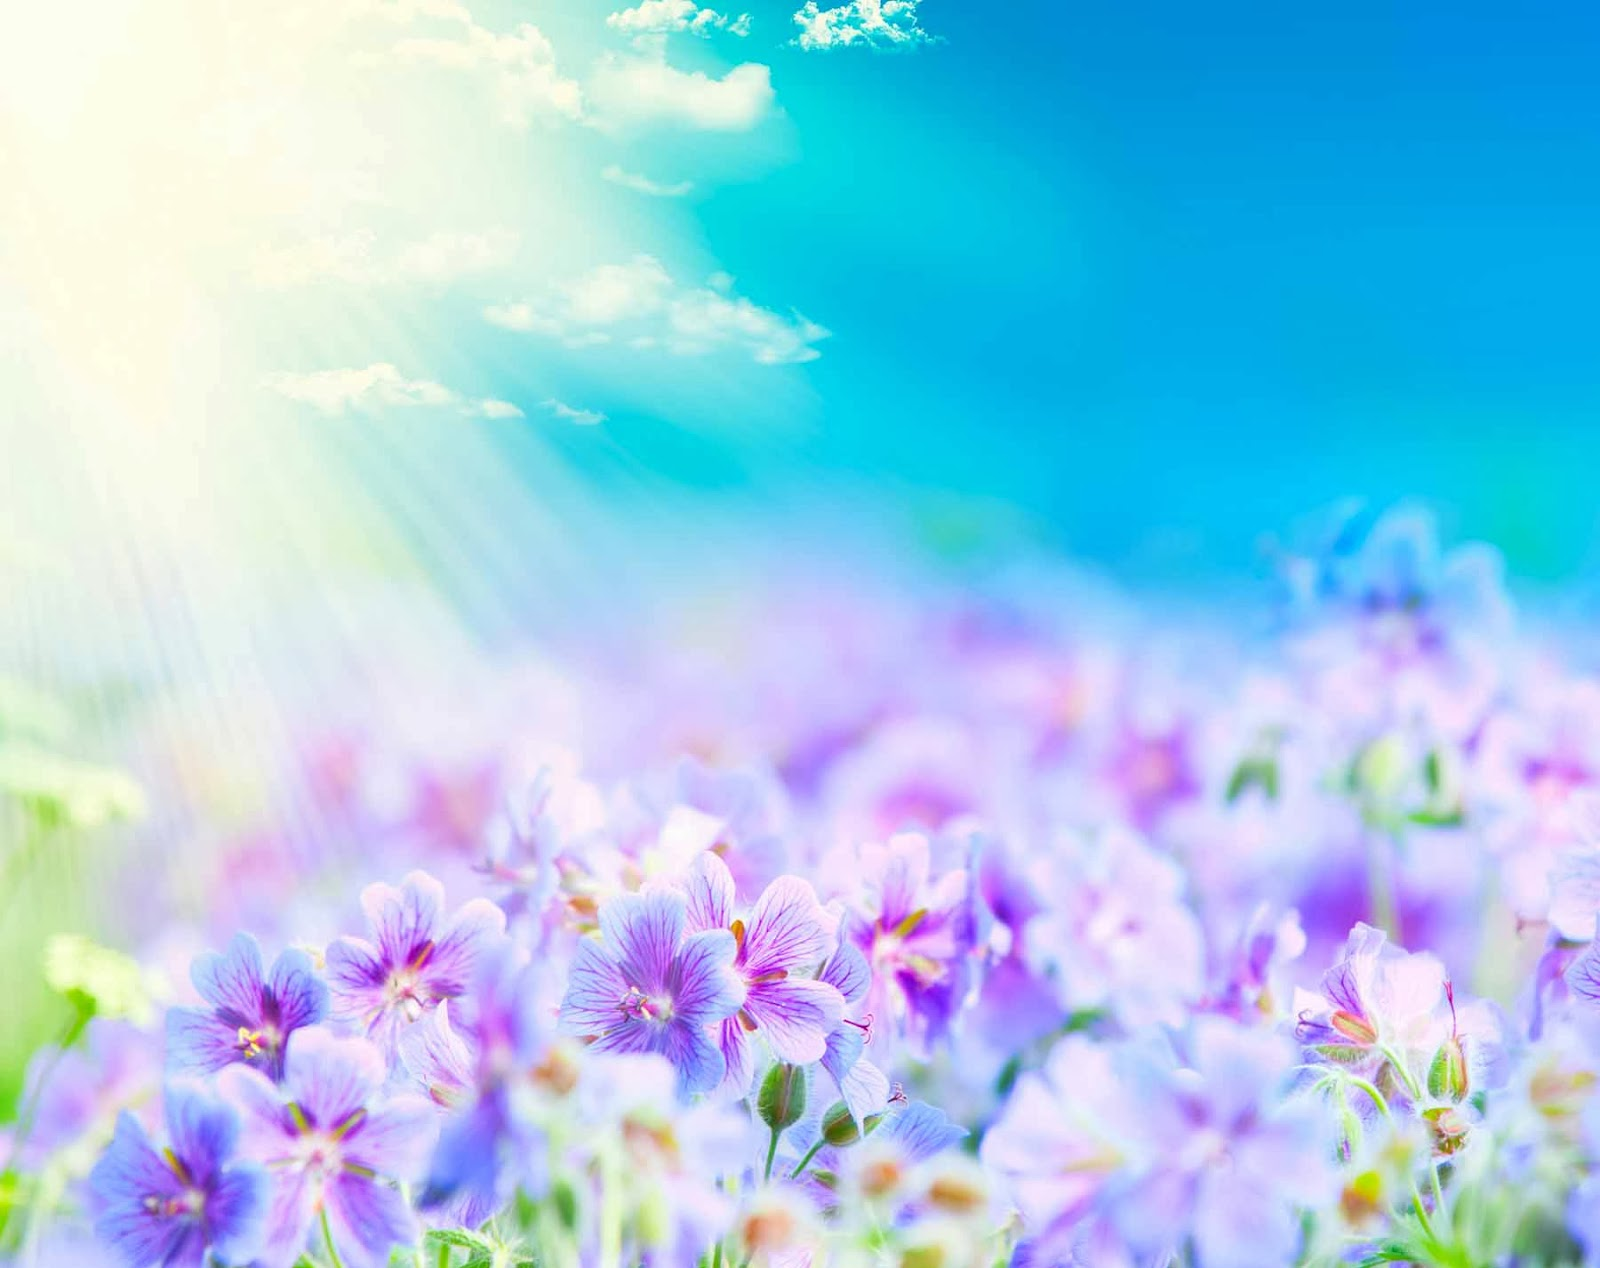 HQ Wallpapers: Fantasy Flower Wallpapers